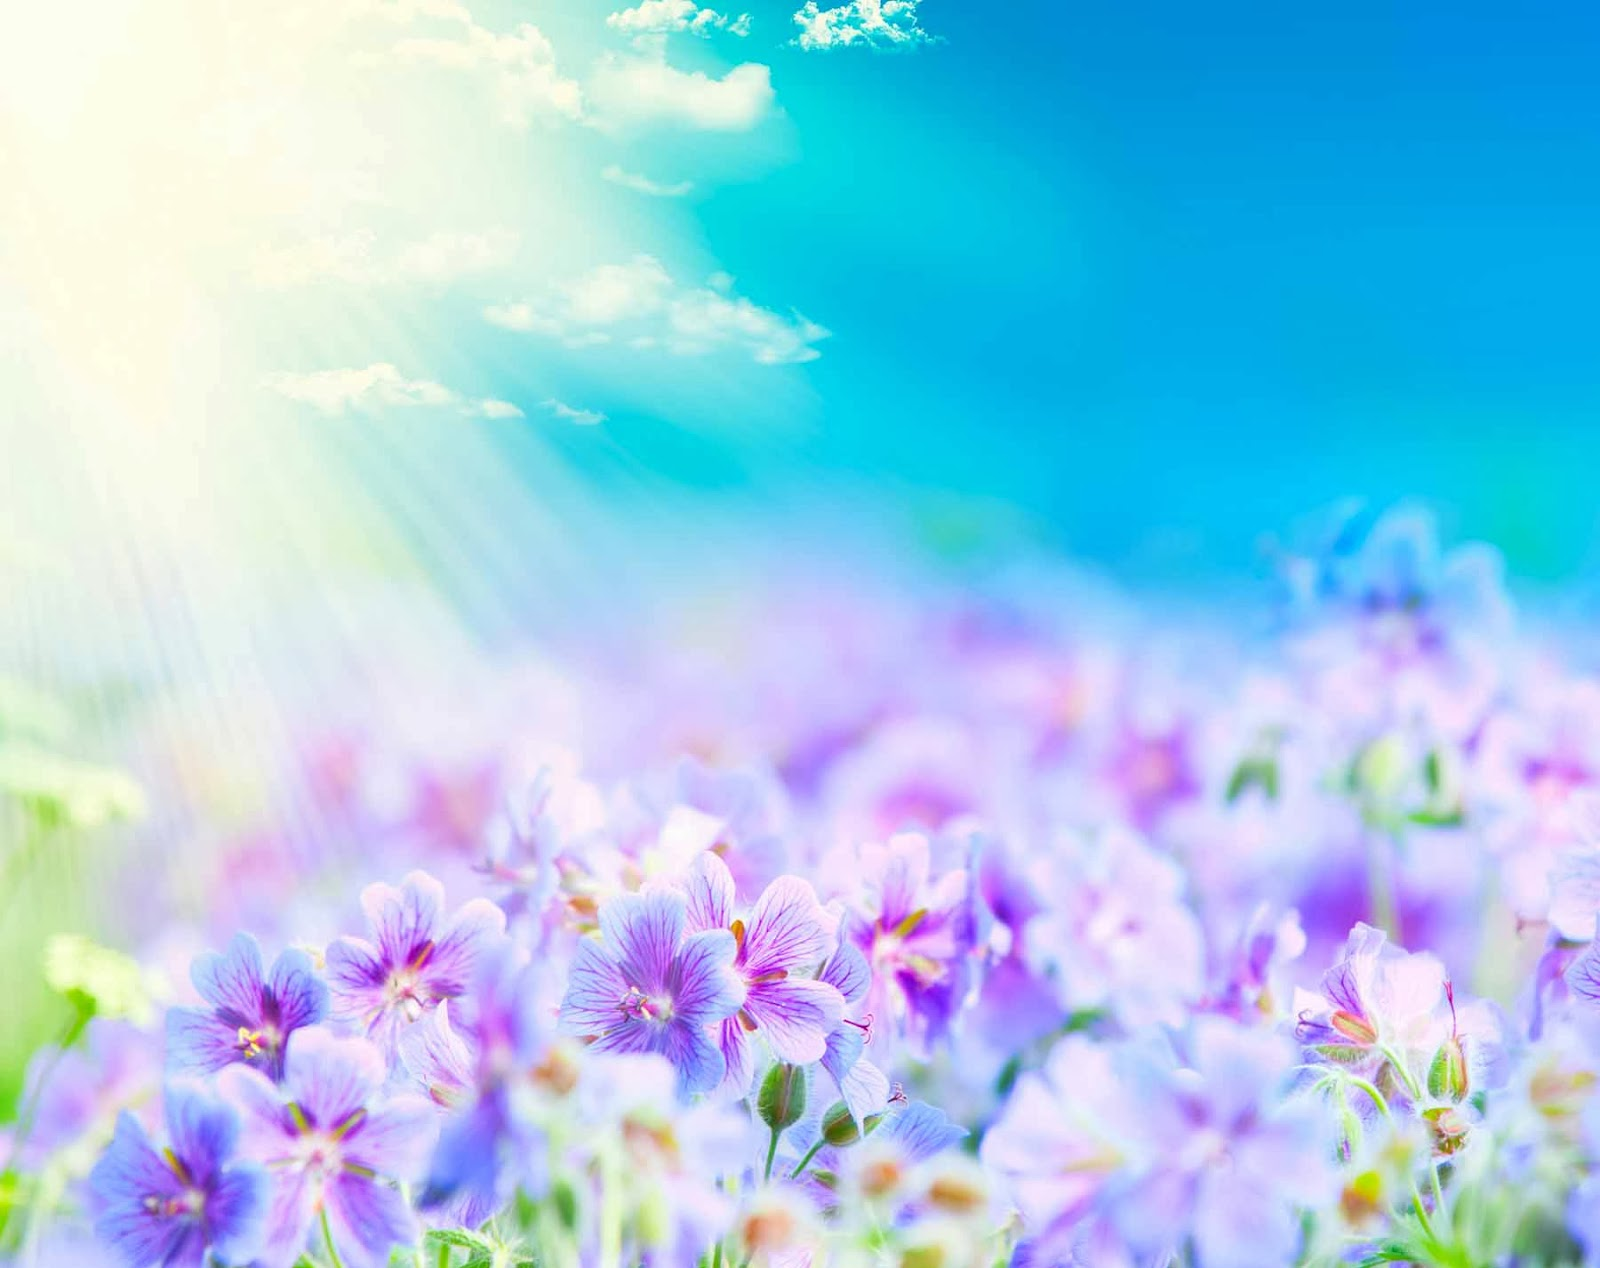 HQ Wallpapers: Fantasy Flower Wallpapers